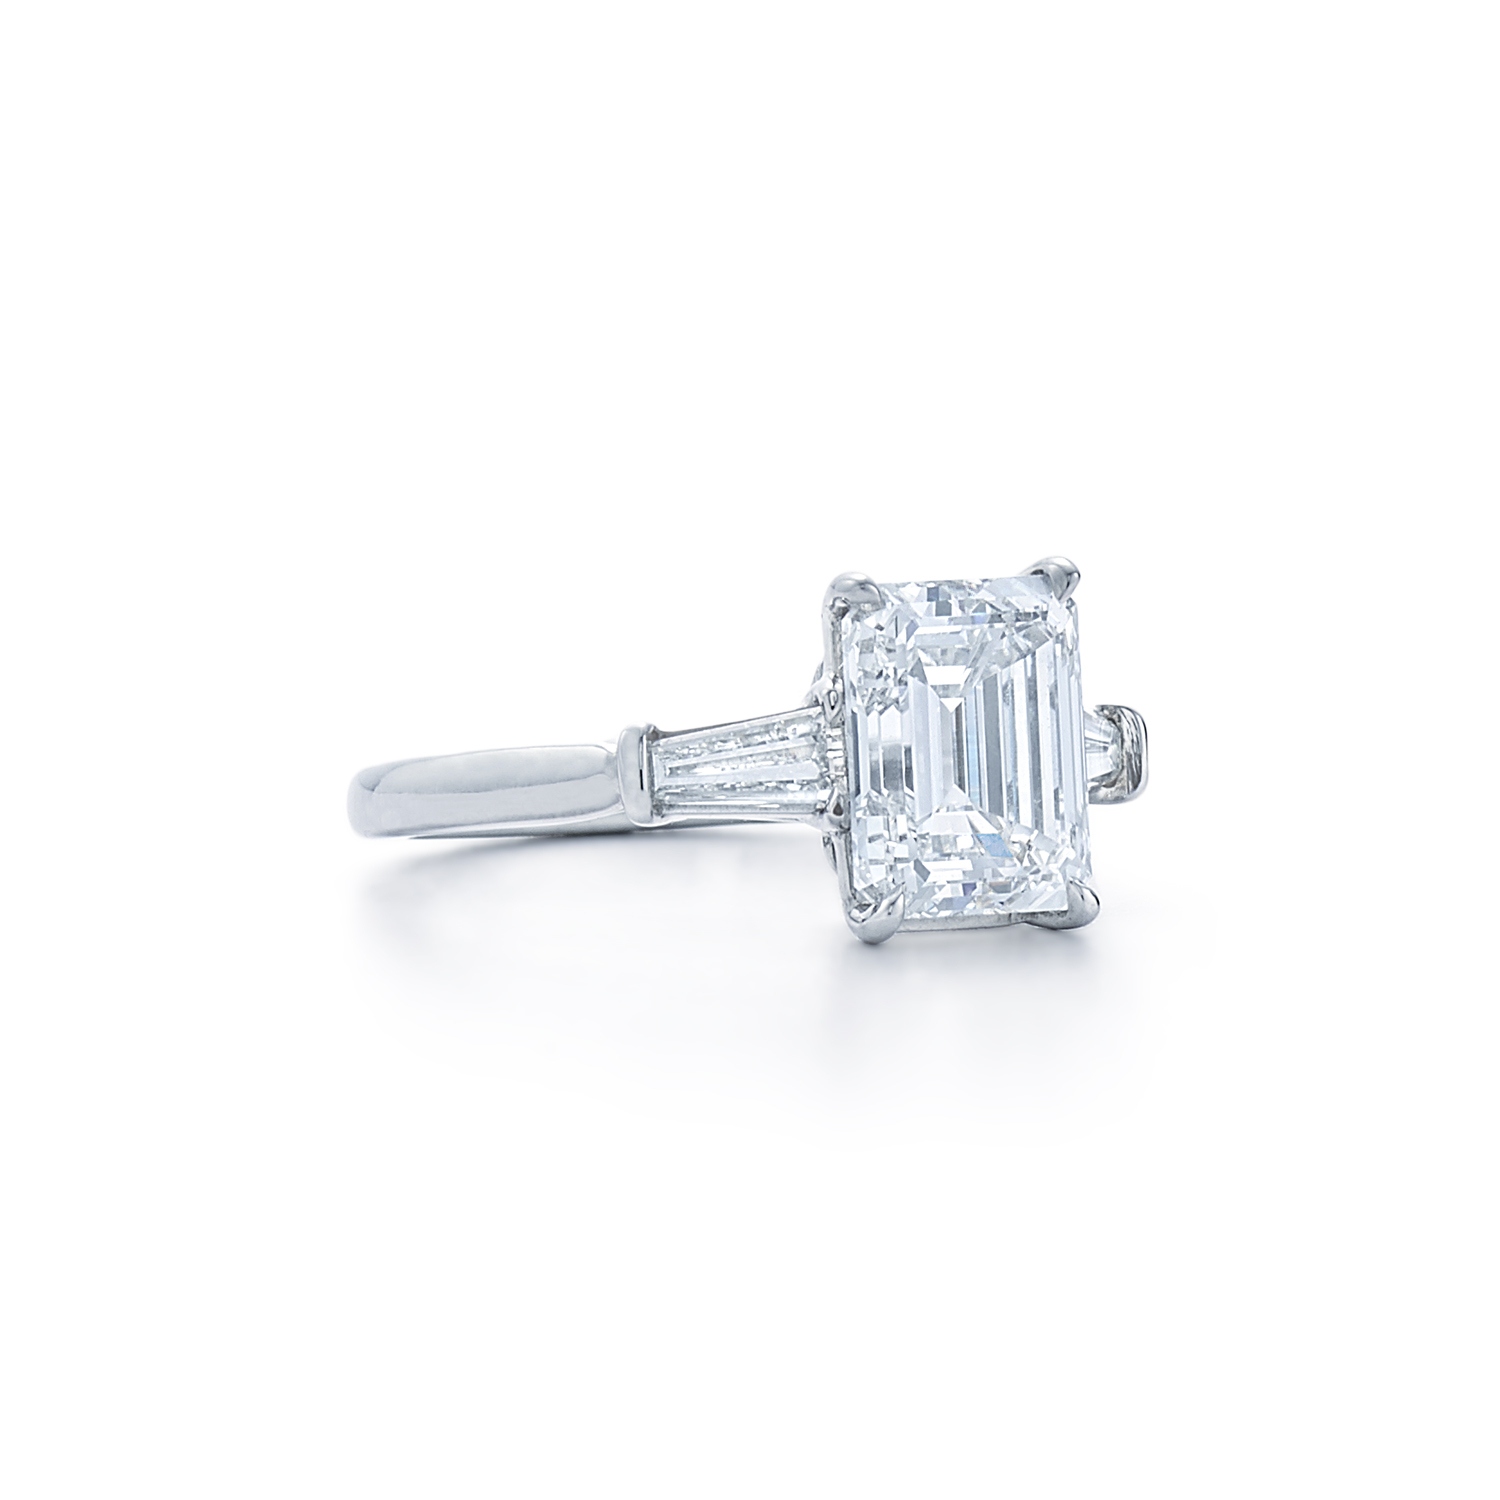 Emerald Cut Diamond Engagement Ring | Dk Gems With Cushion Cut Engagement Rings With Tapered Baguette Side Stones (View 17 of 25)